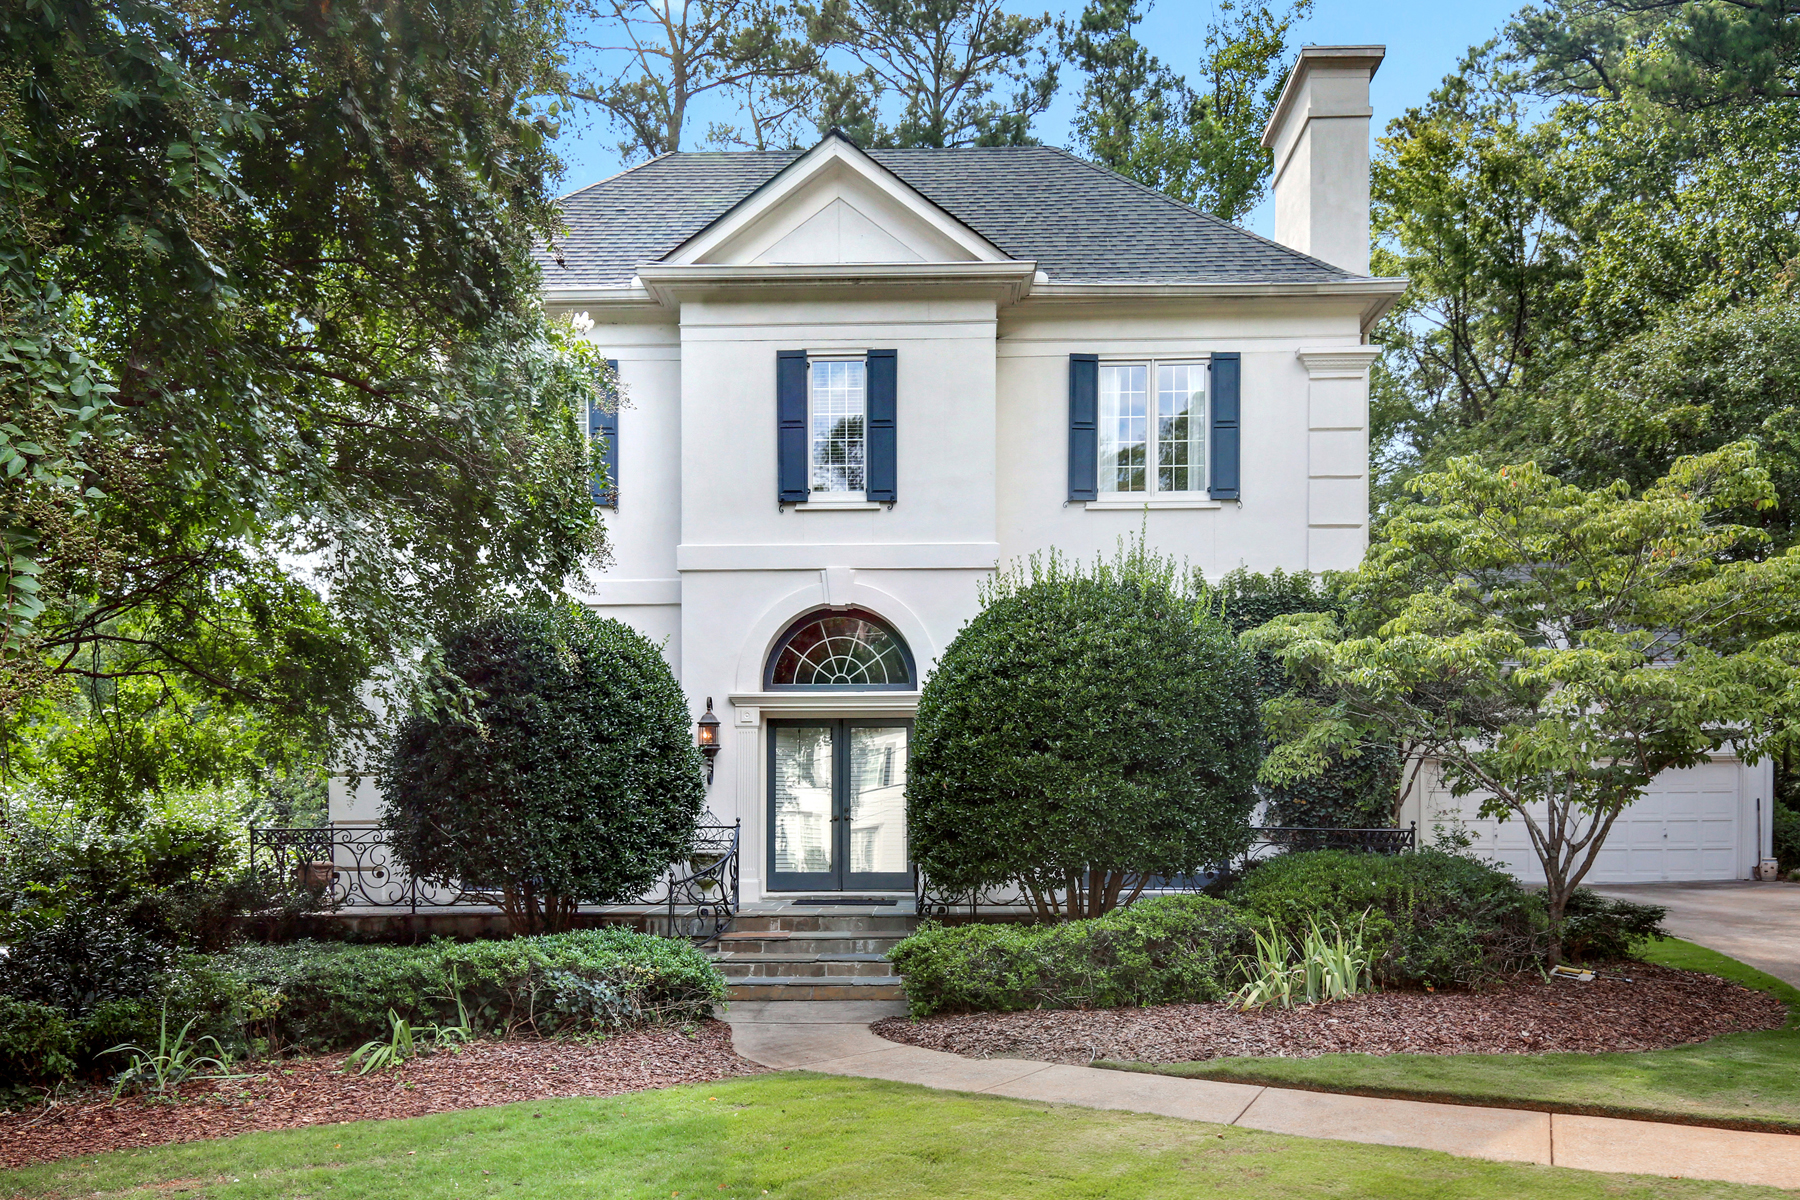 一戸建て のために 売買 アット Elegant Traditional Home In Perfect Buckhead Location 1280 West Wesley Road NW Atlanta, ジョージア, 30327 アメリカ合衆国